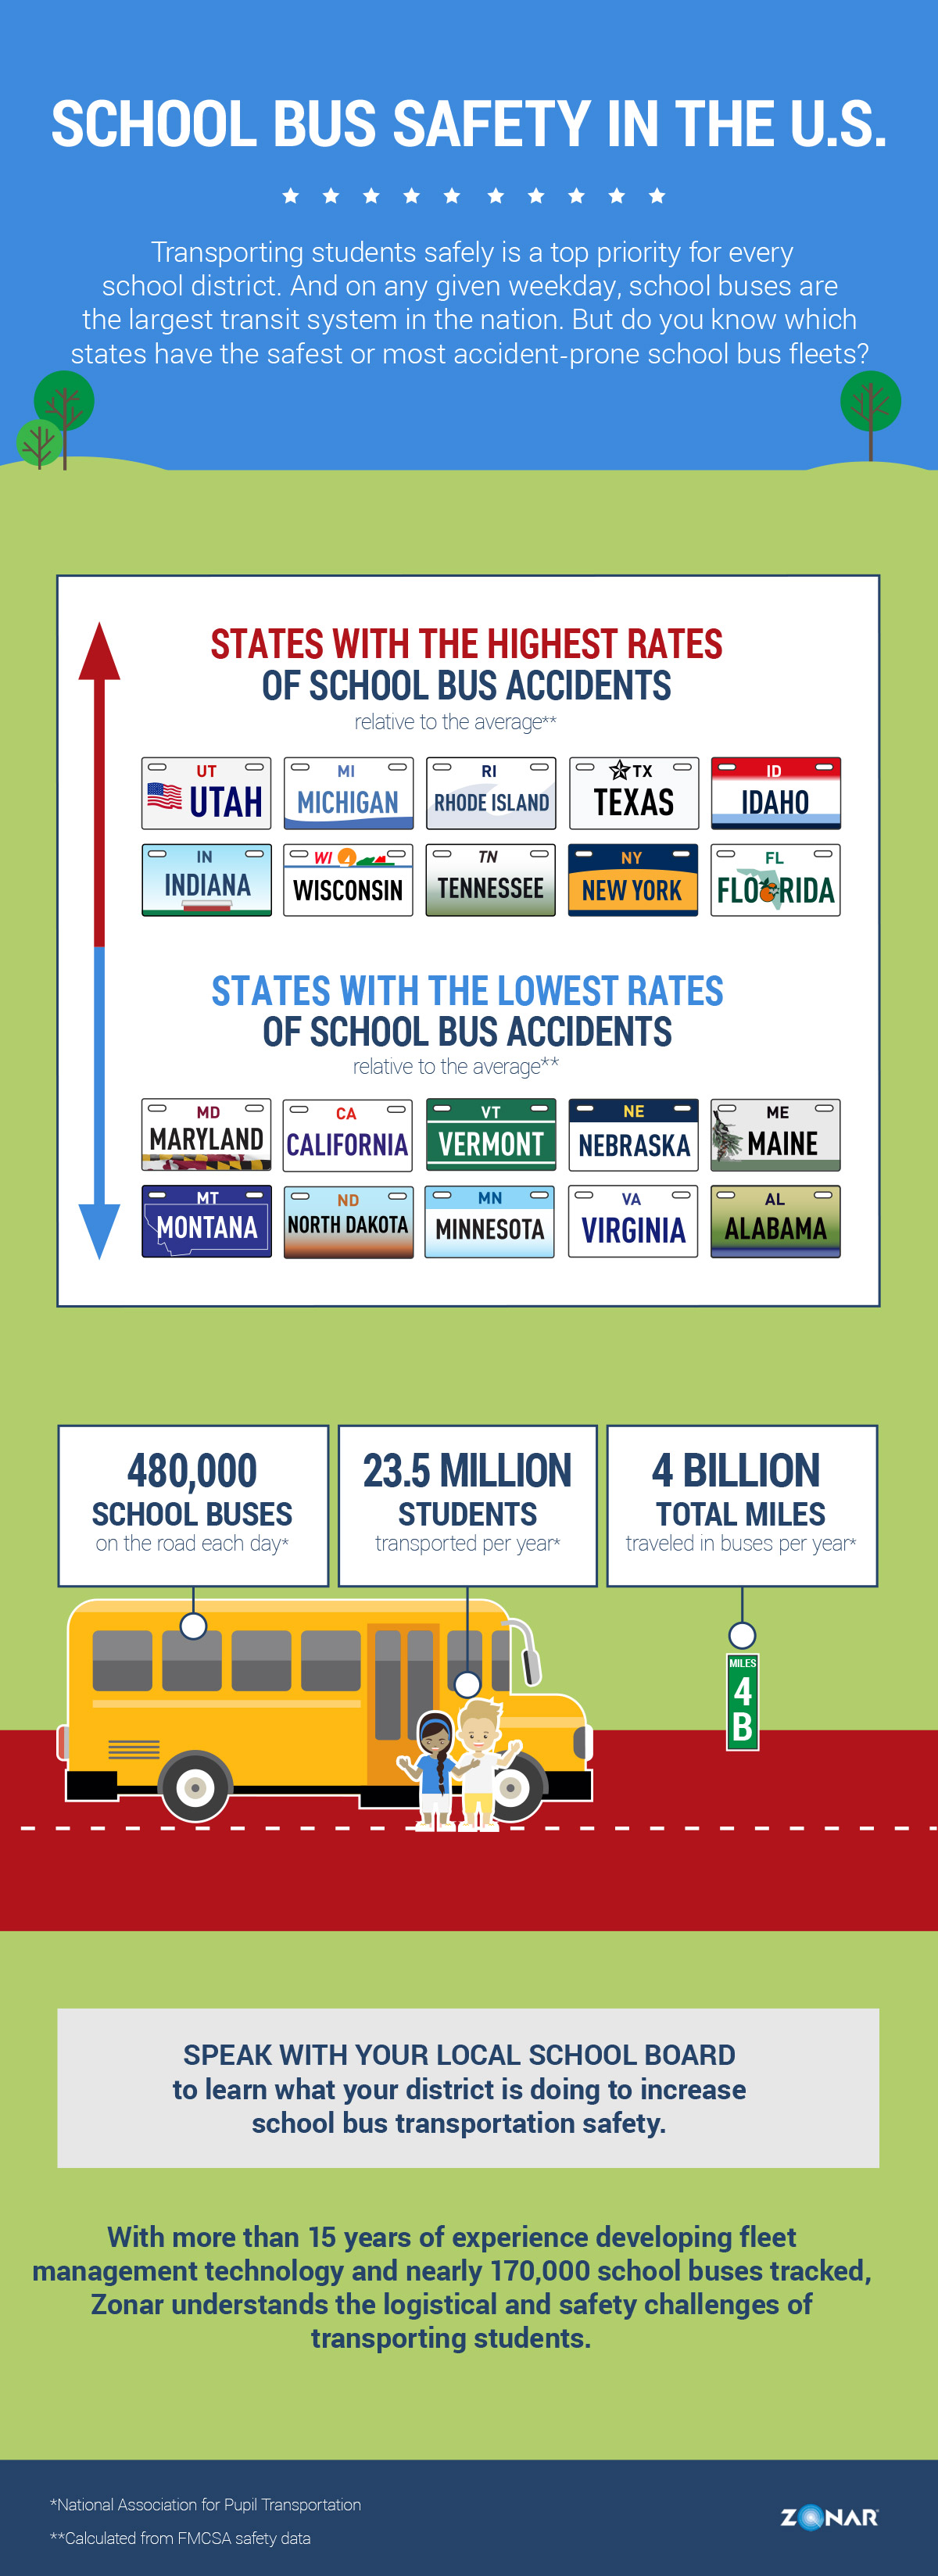 Infographic: School Bus Safety in the U.S.